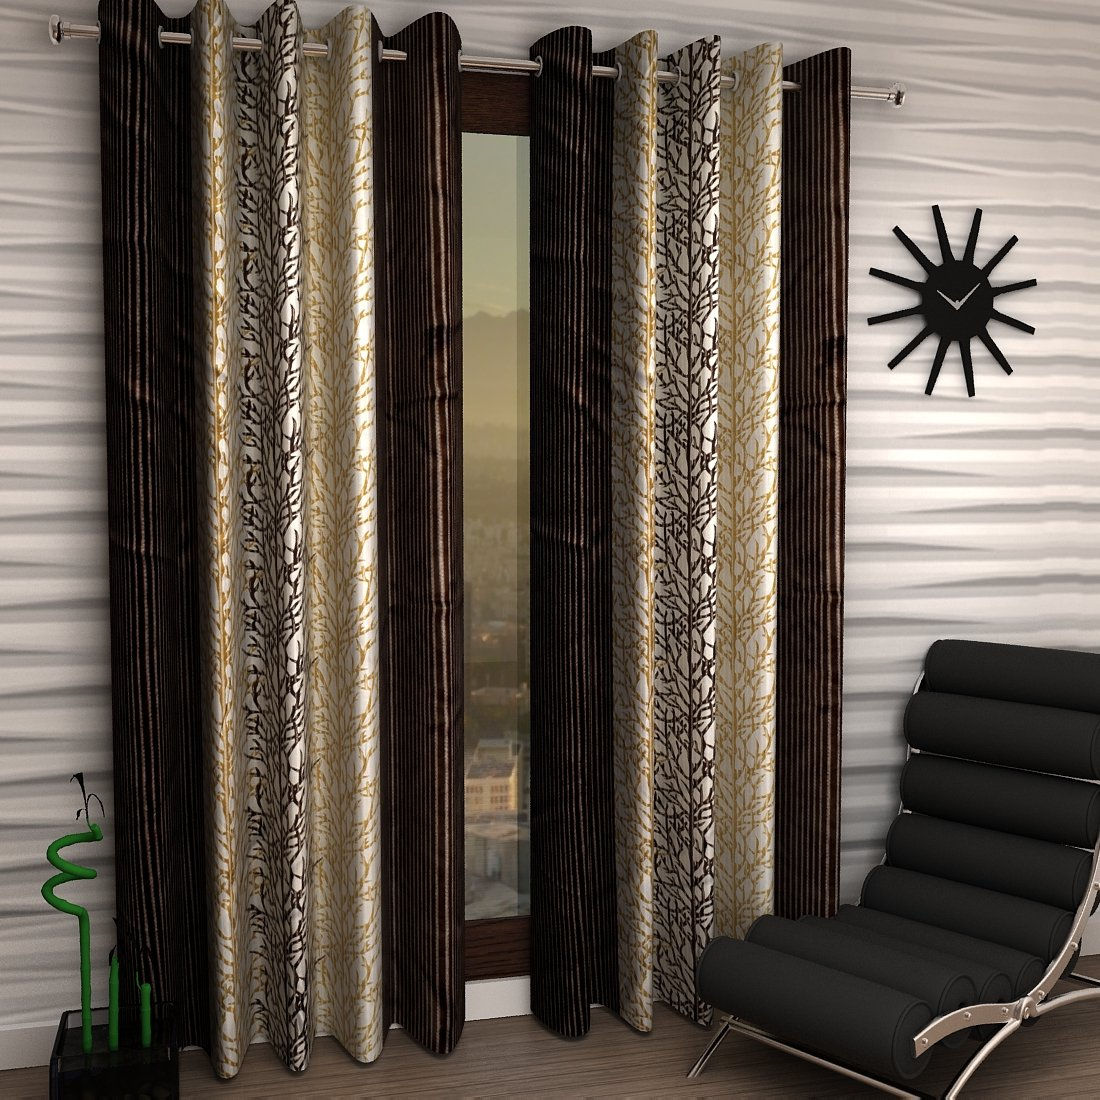 Home Sizzler Set of 4 Long Door Curtains - 9 Feet